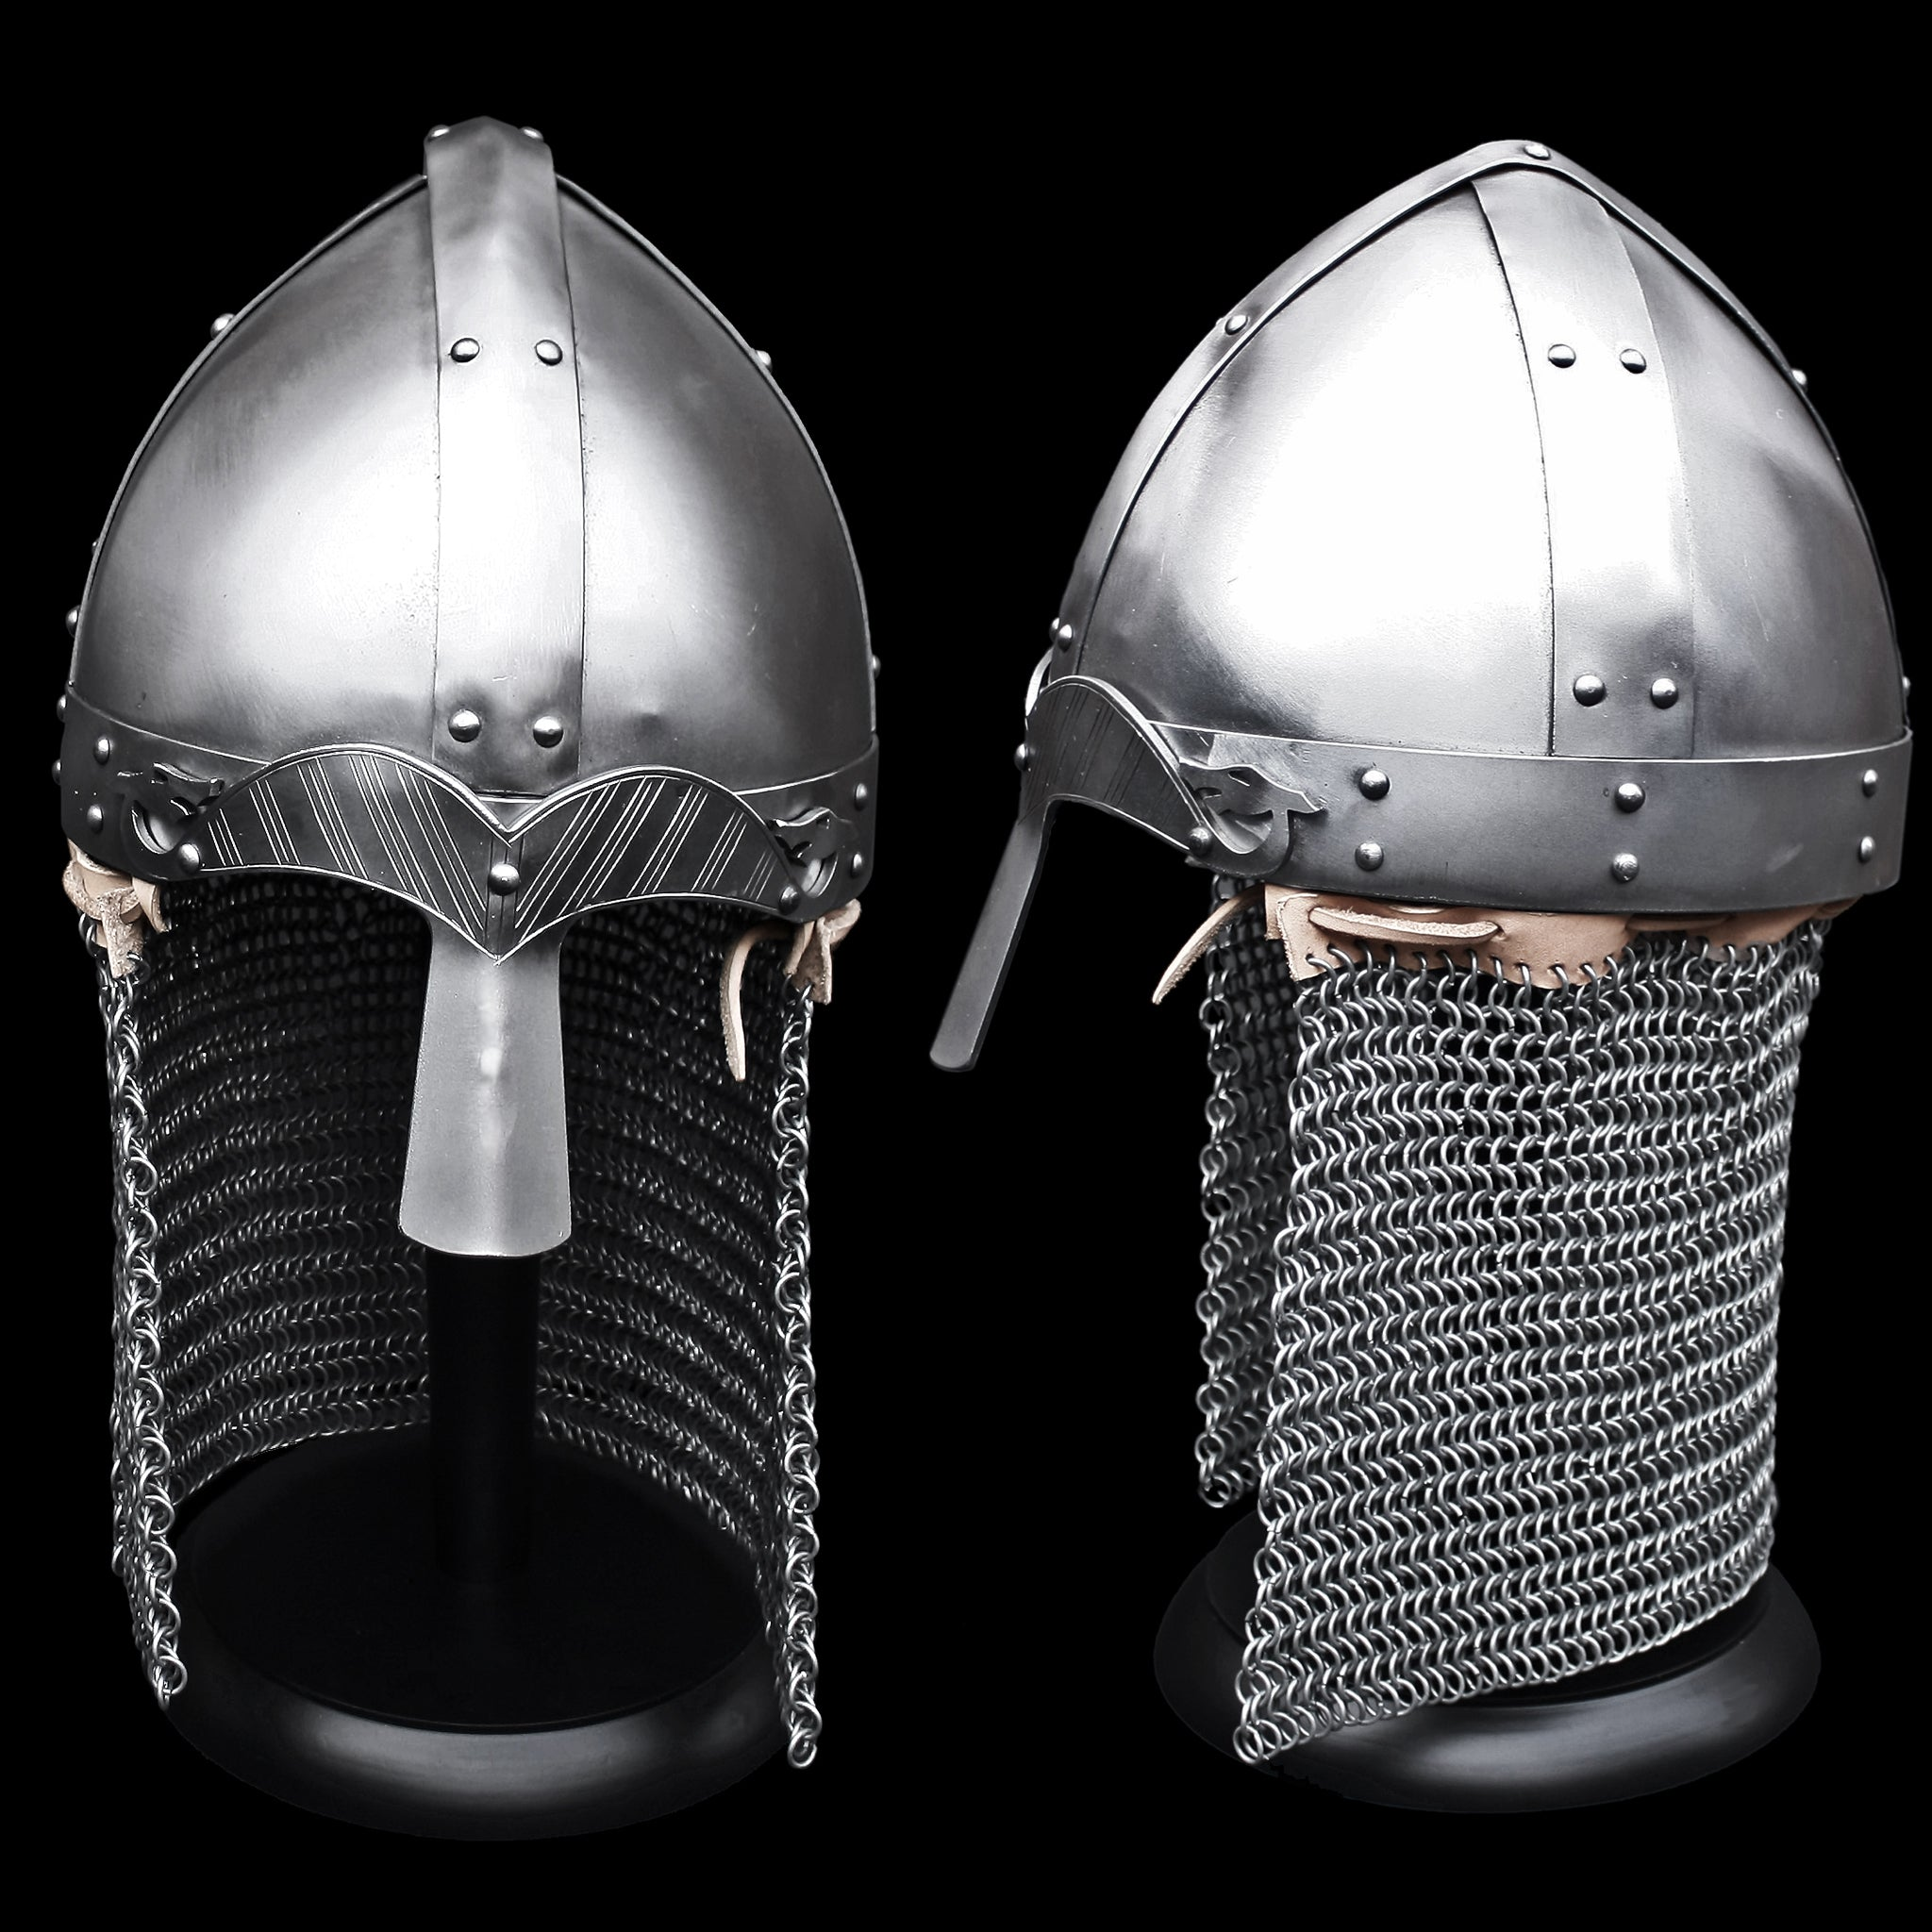 Viking Nasal Spangenhelm Helmet with Aventail